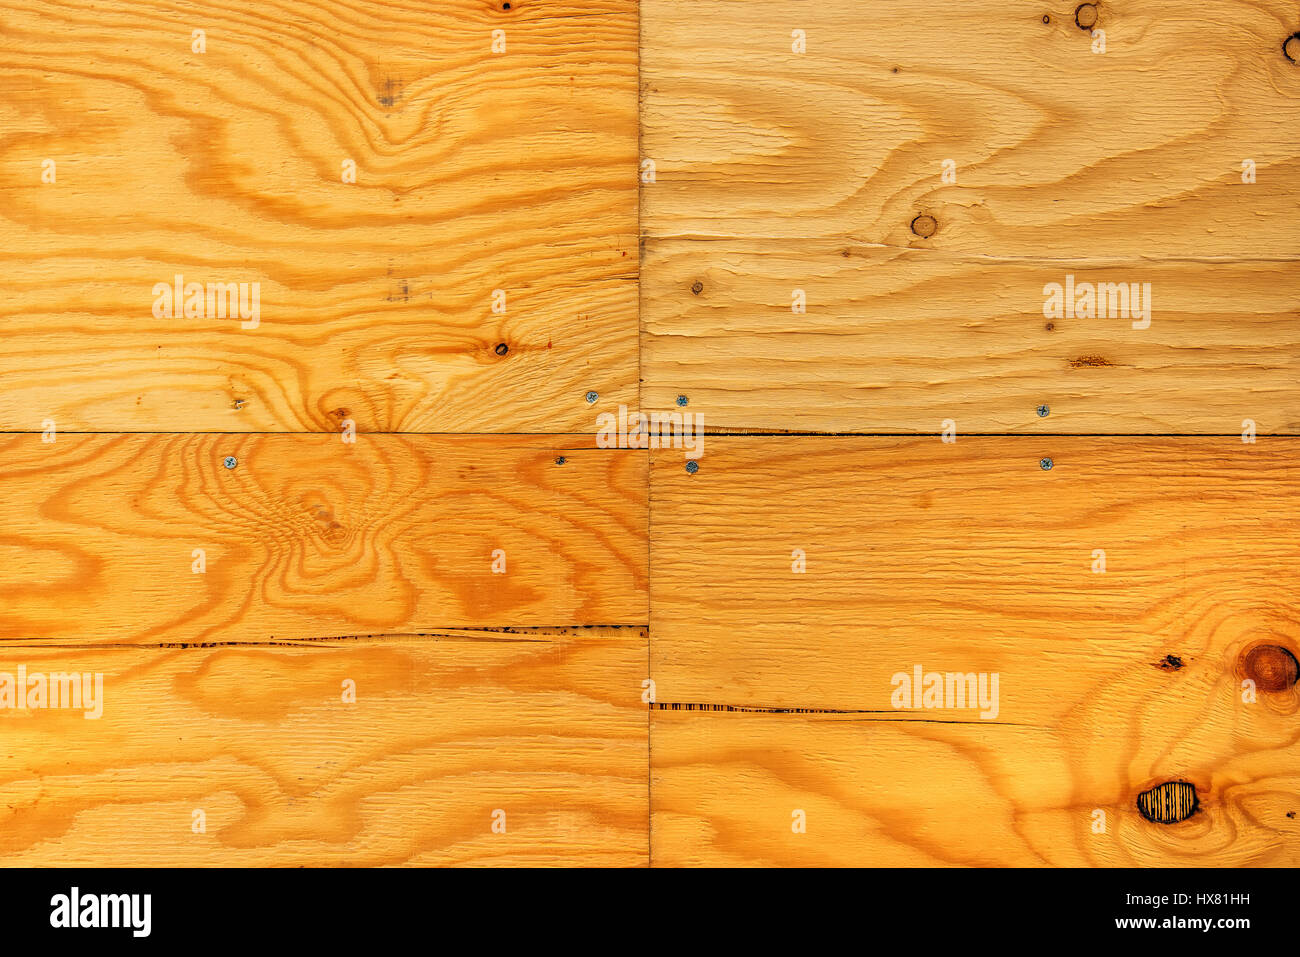 Wooden planks background, four hardwood boards tiled and nailed with screws - Stock Image